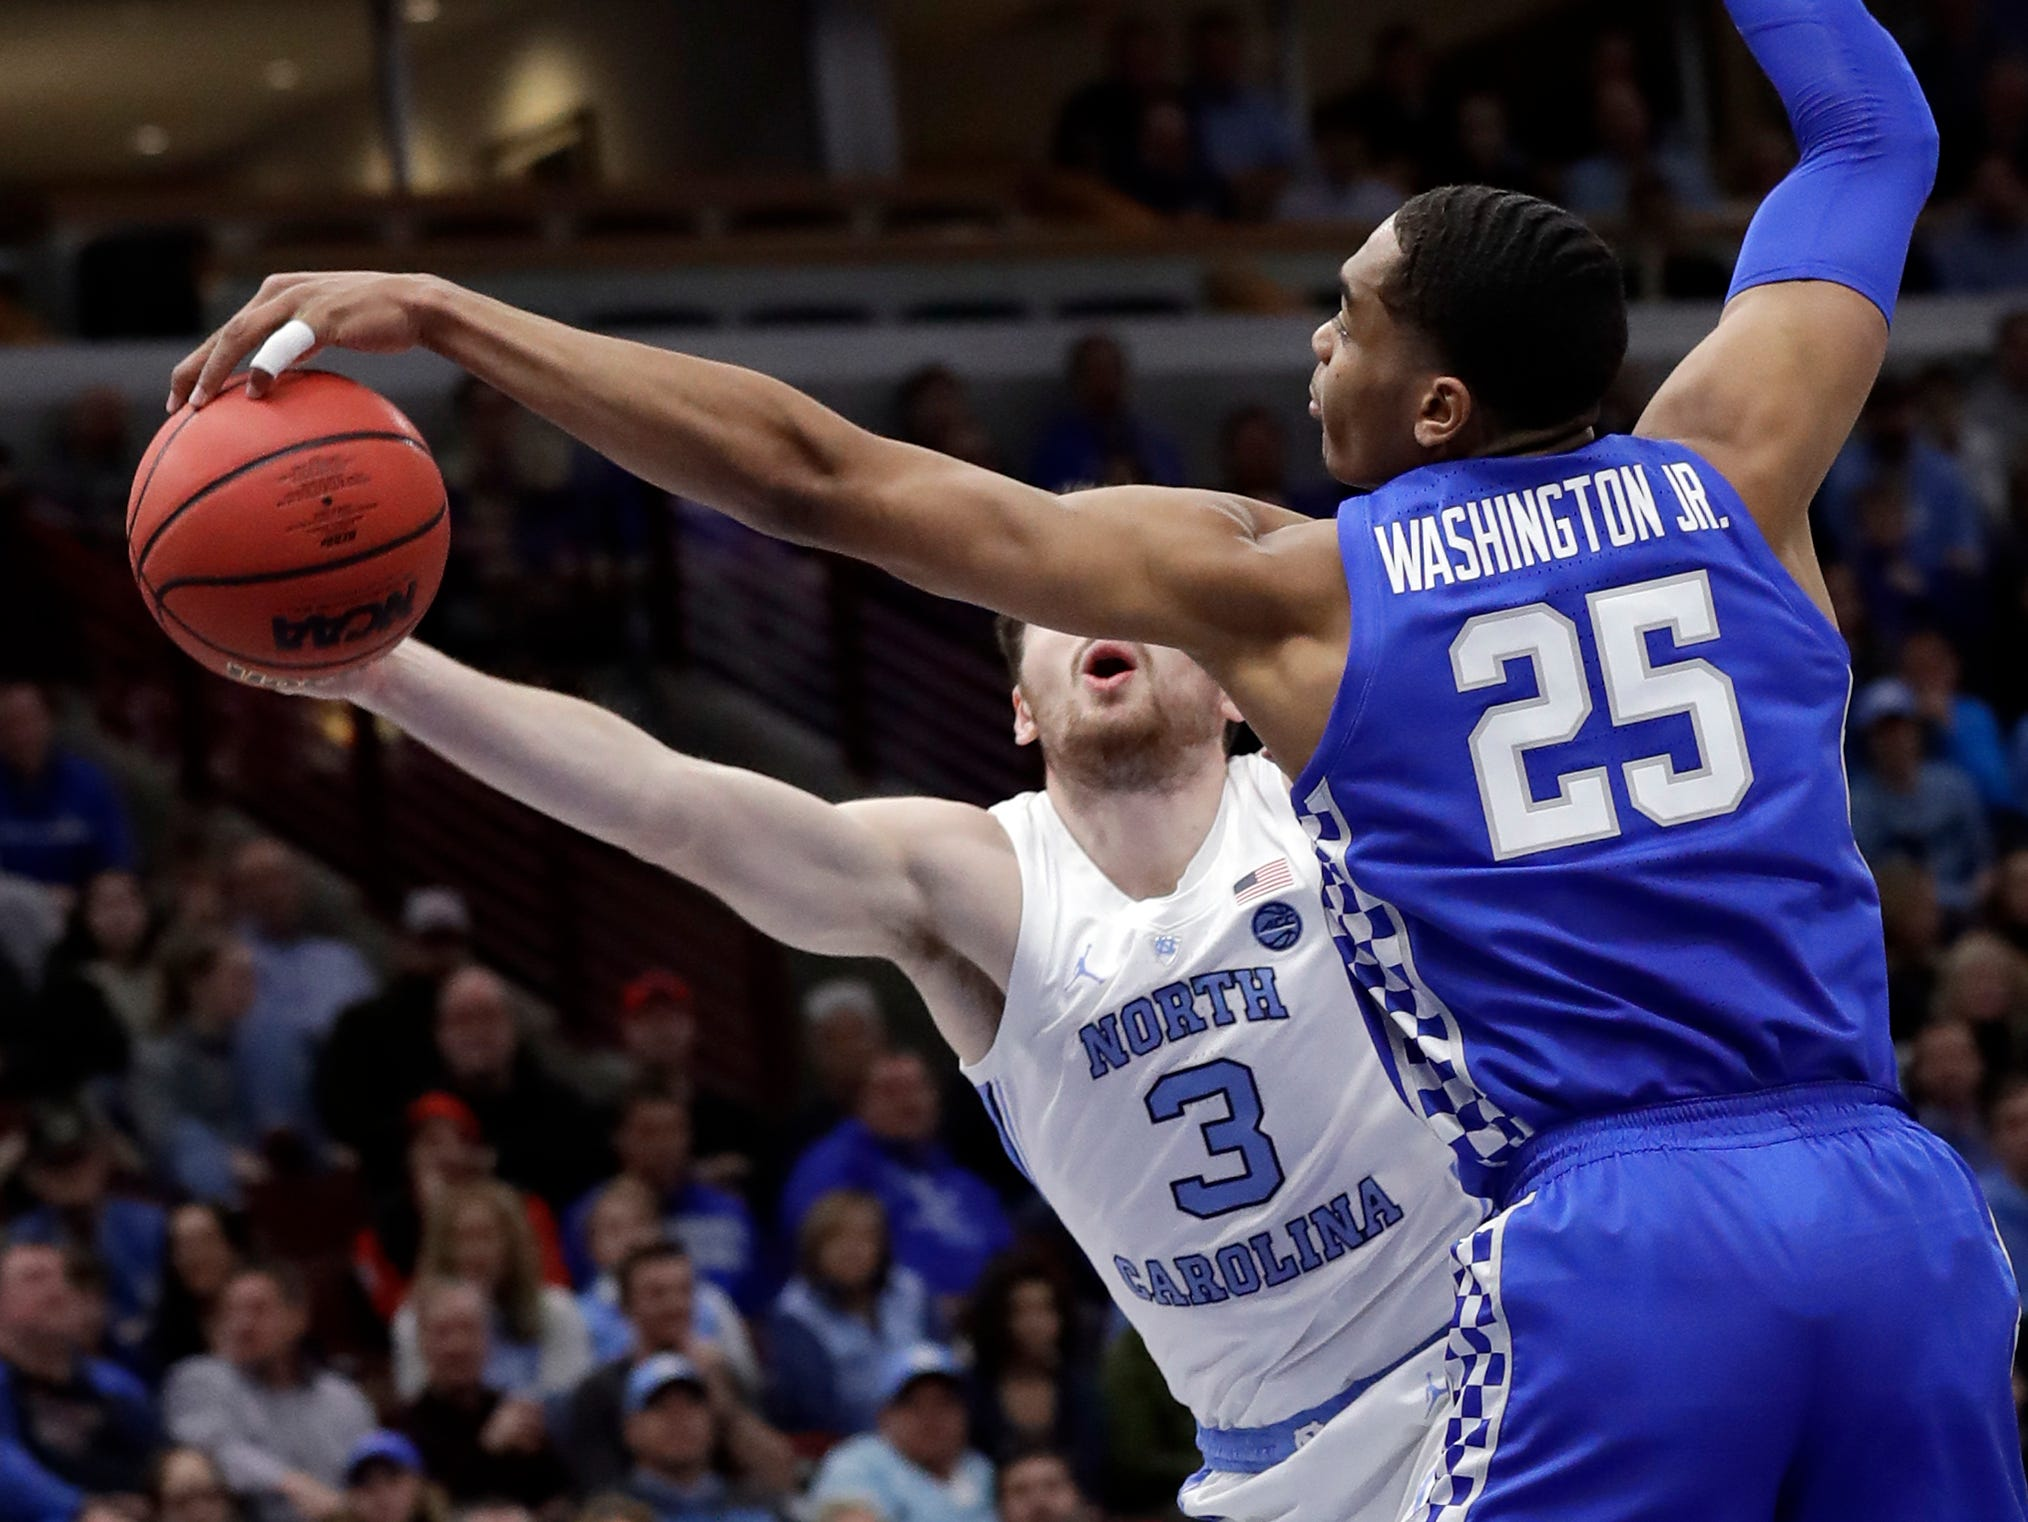 Kentucky forward PJ Washington Jr., right, blocks a shot by North Carolina guard Andrew Platek during the first half of an NCAA college basketball game in the fifth annual CBS Sports Classic, Saturday, Dec. 22, 2018, in Chicago.